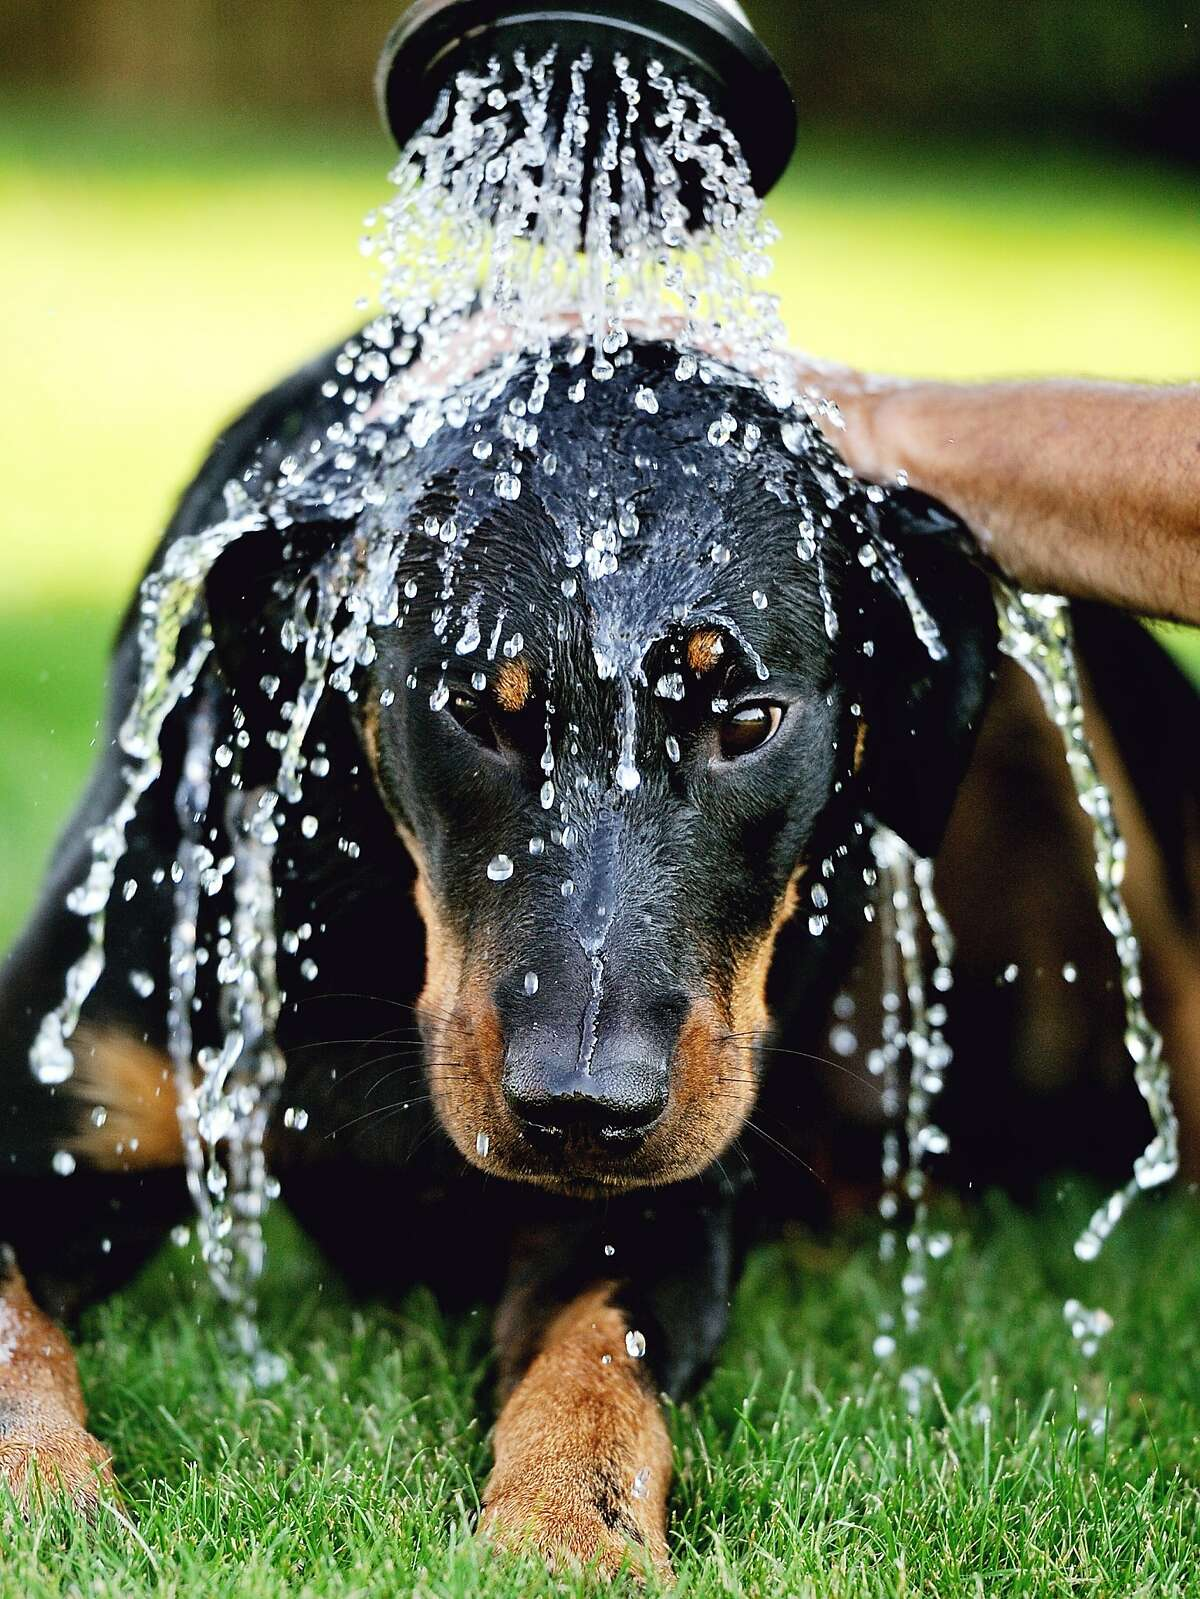 A person sprays water on his dog on August 19, 2012 in Godewaersvelde, northern France, as France sweltered under a summer heatwave.